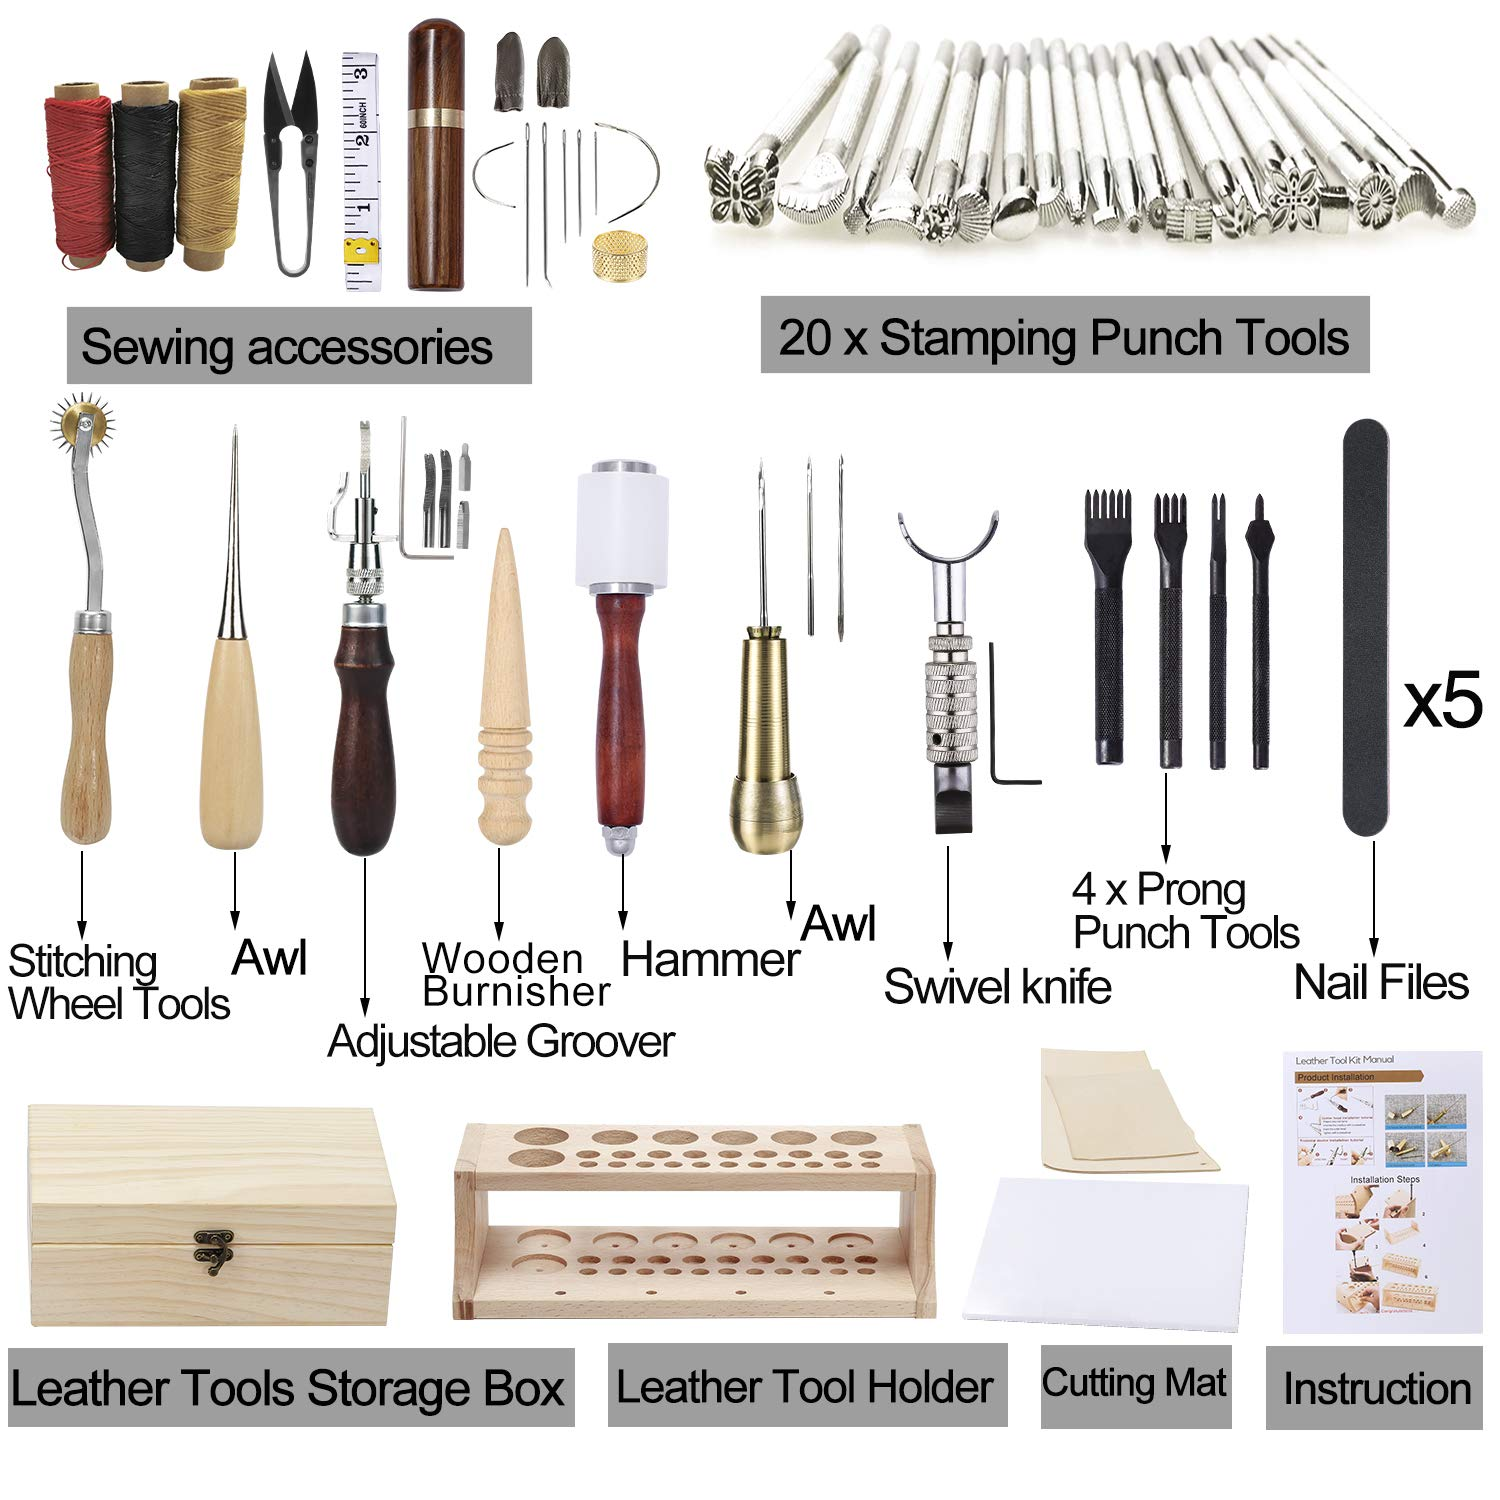 UOOU Leathercraft Hand Tools Kit with Instructions,Leathercraft Working Tools,Stamping Set,Prong Punch,Hand Sewing Stitching for DIY Leather Working and Saddle Making